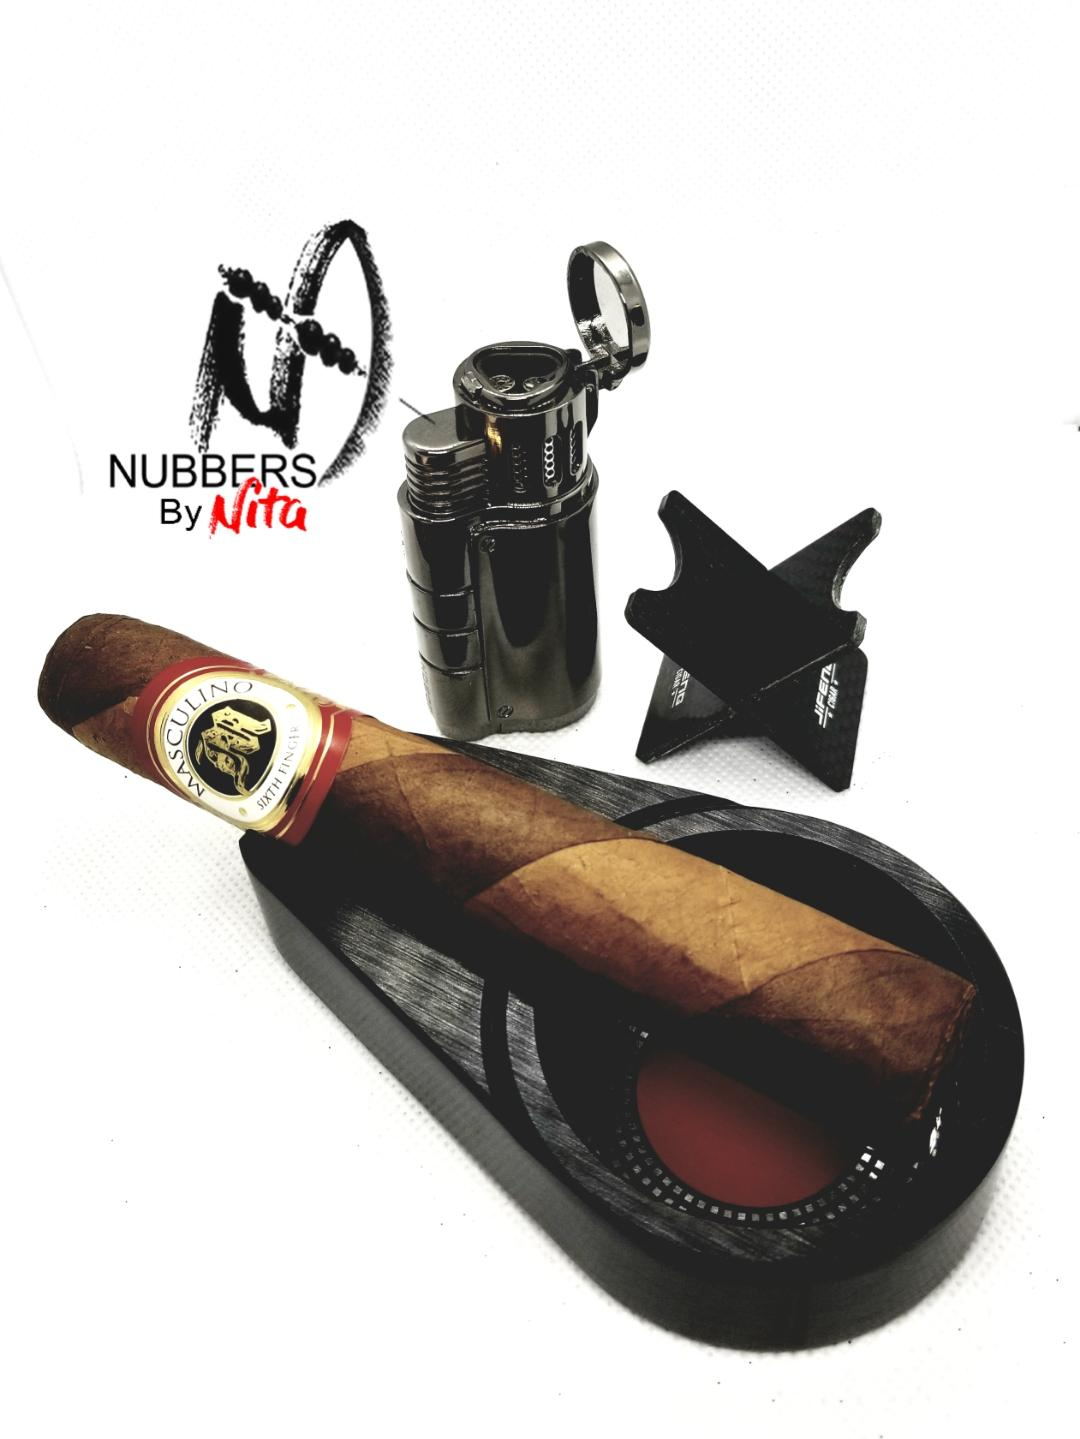 Image of Sophisticated personal ashtray and cigar stand